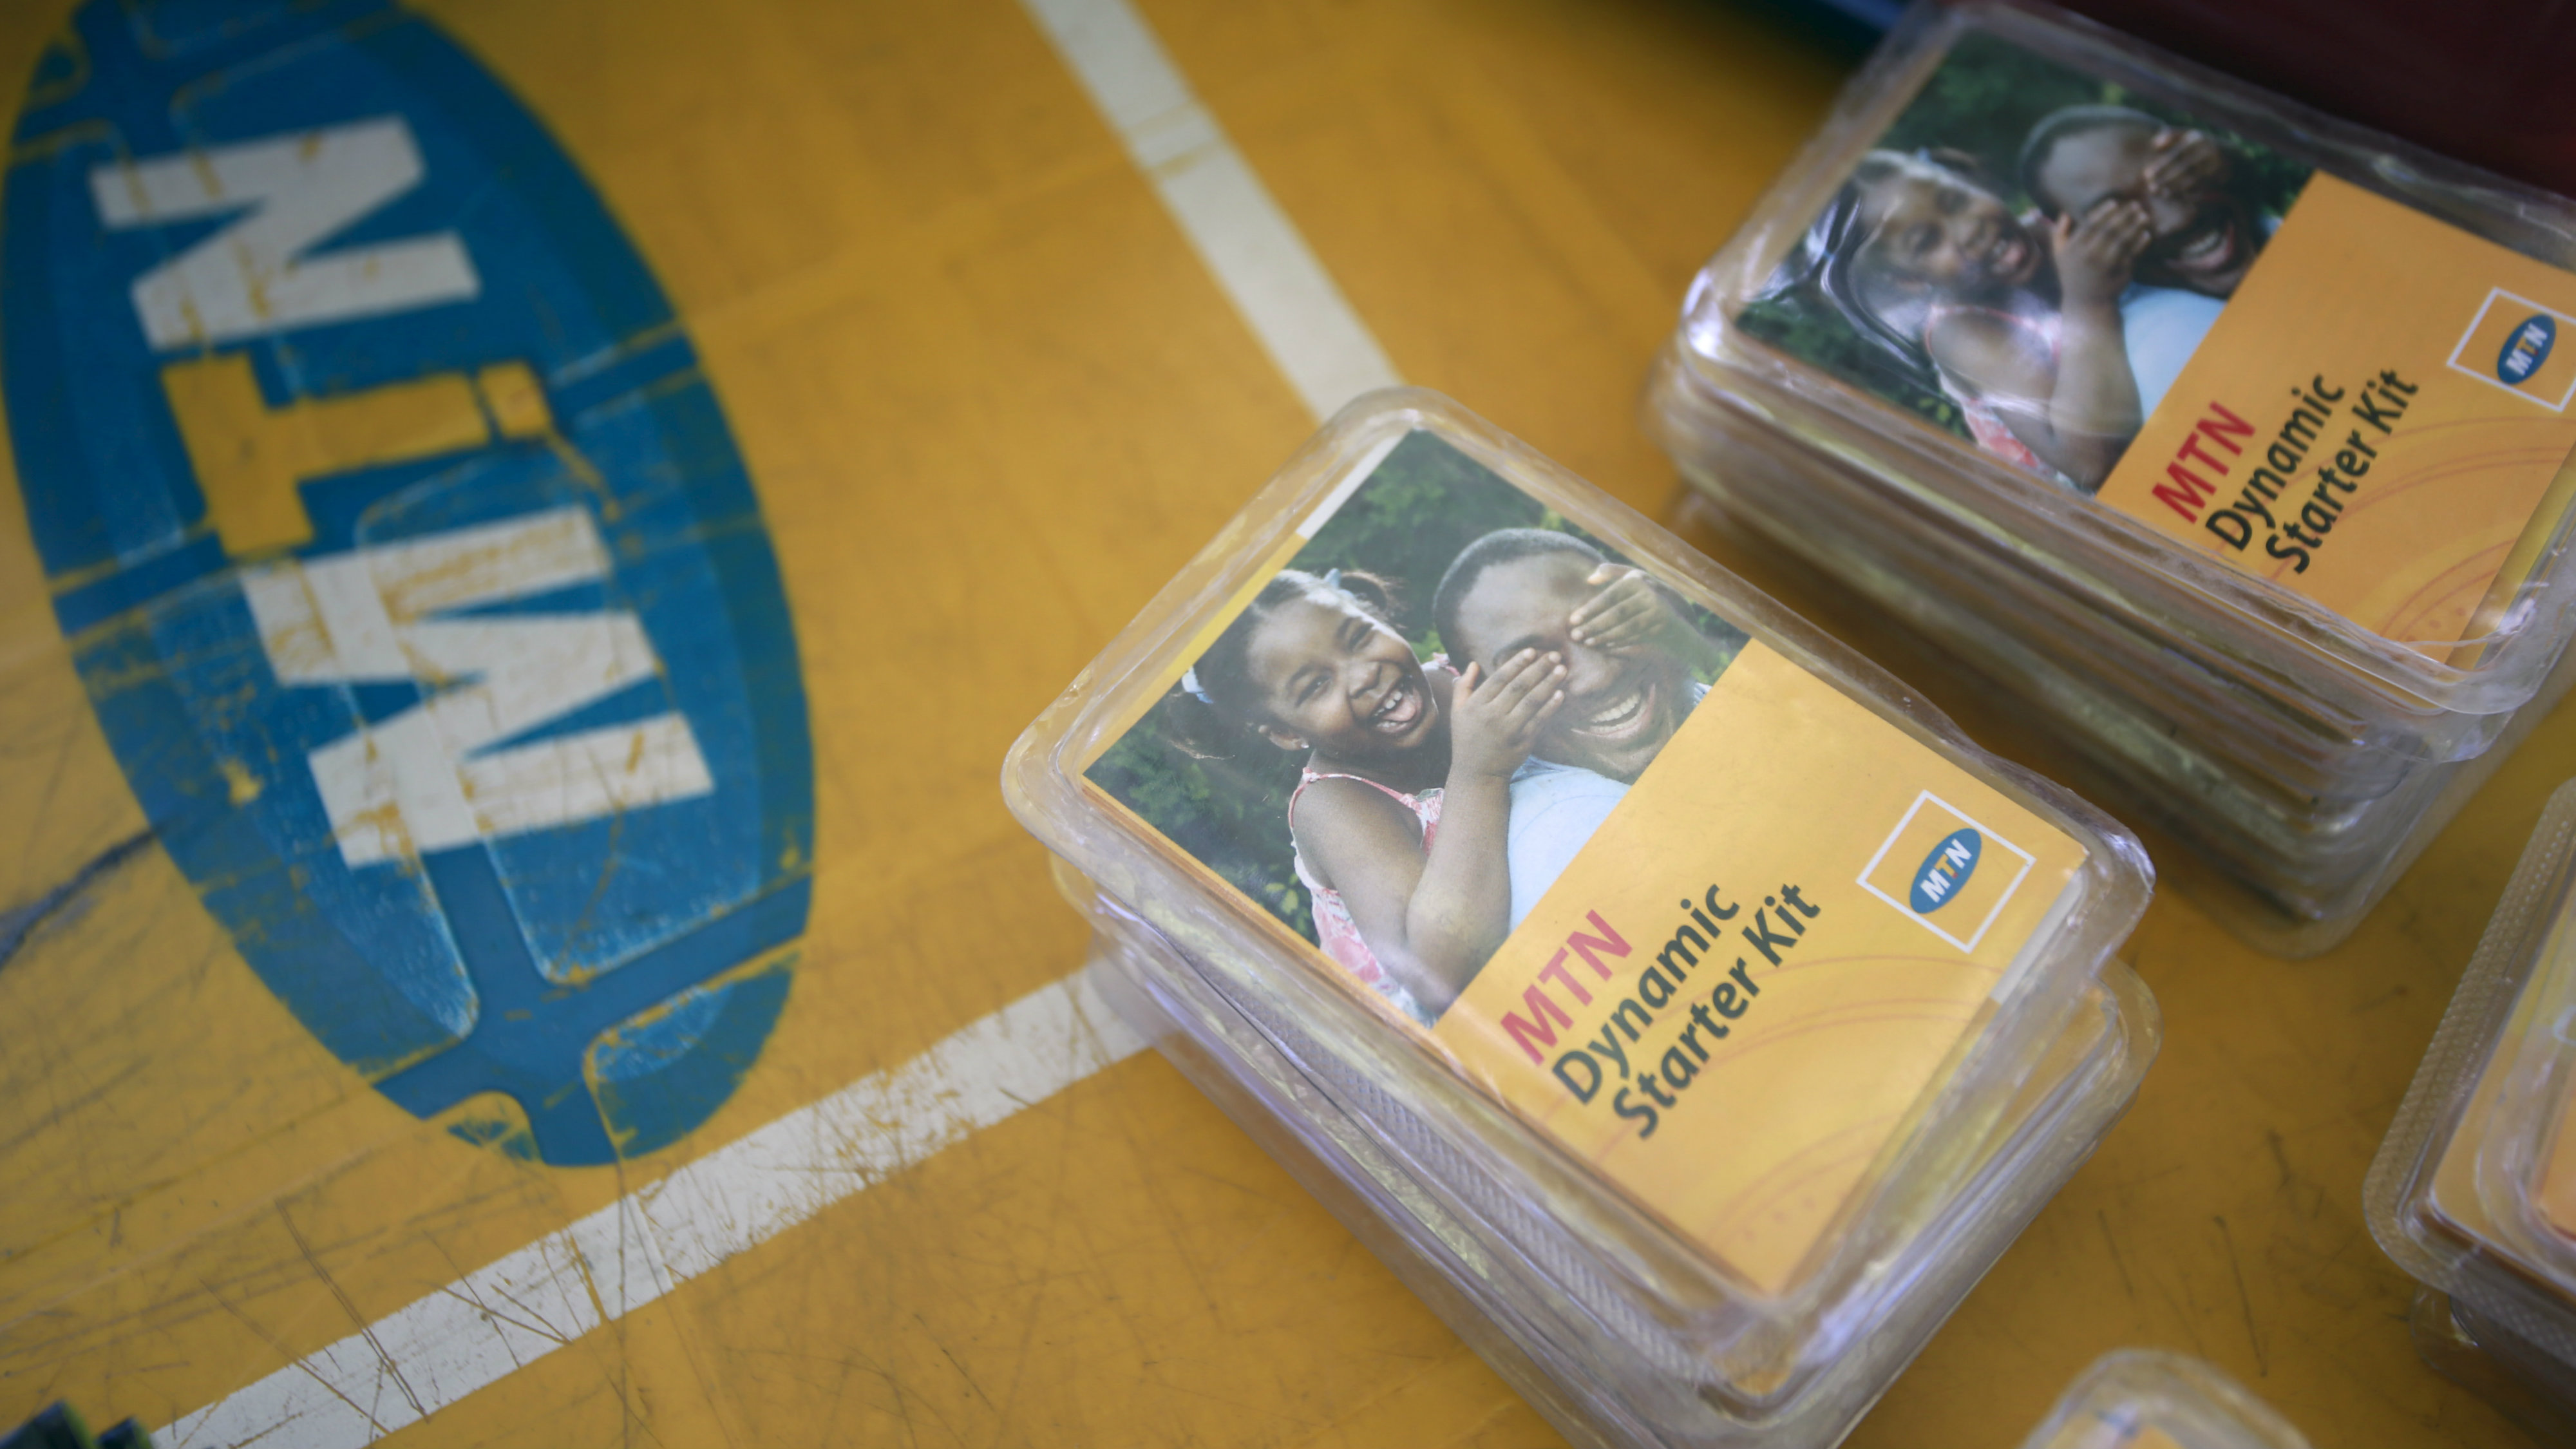 An MTN starter kit pack on display on a table at a retail stand in Abuja, Nigeria.